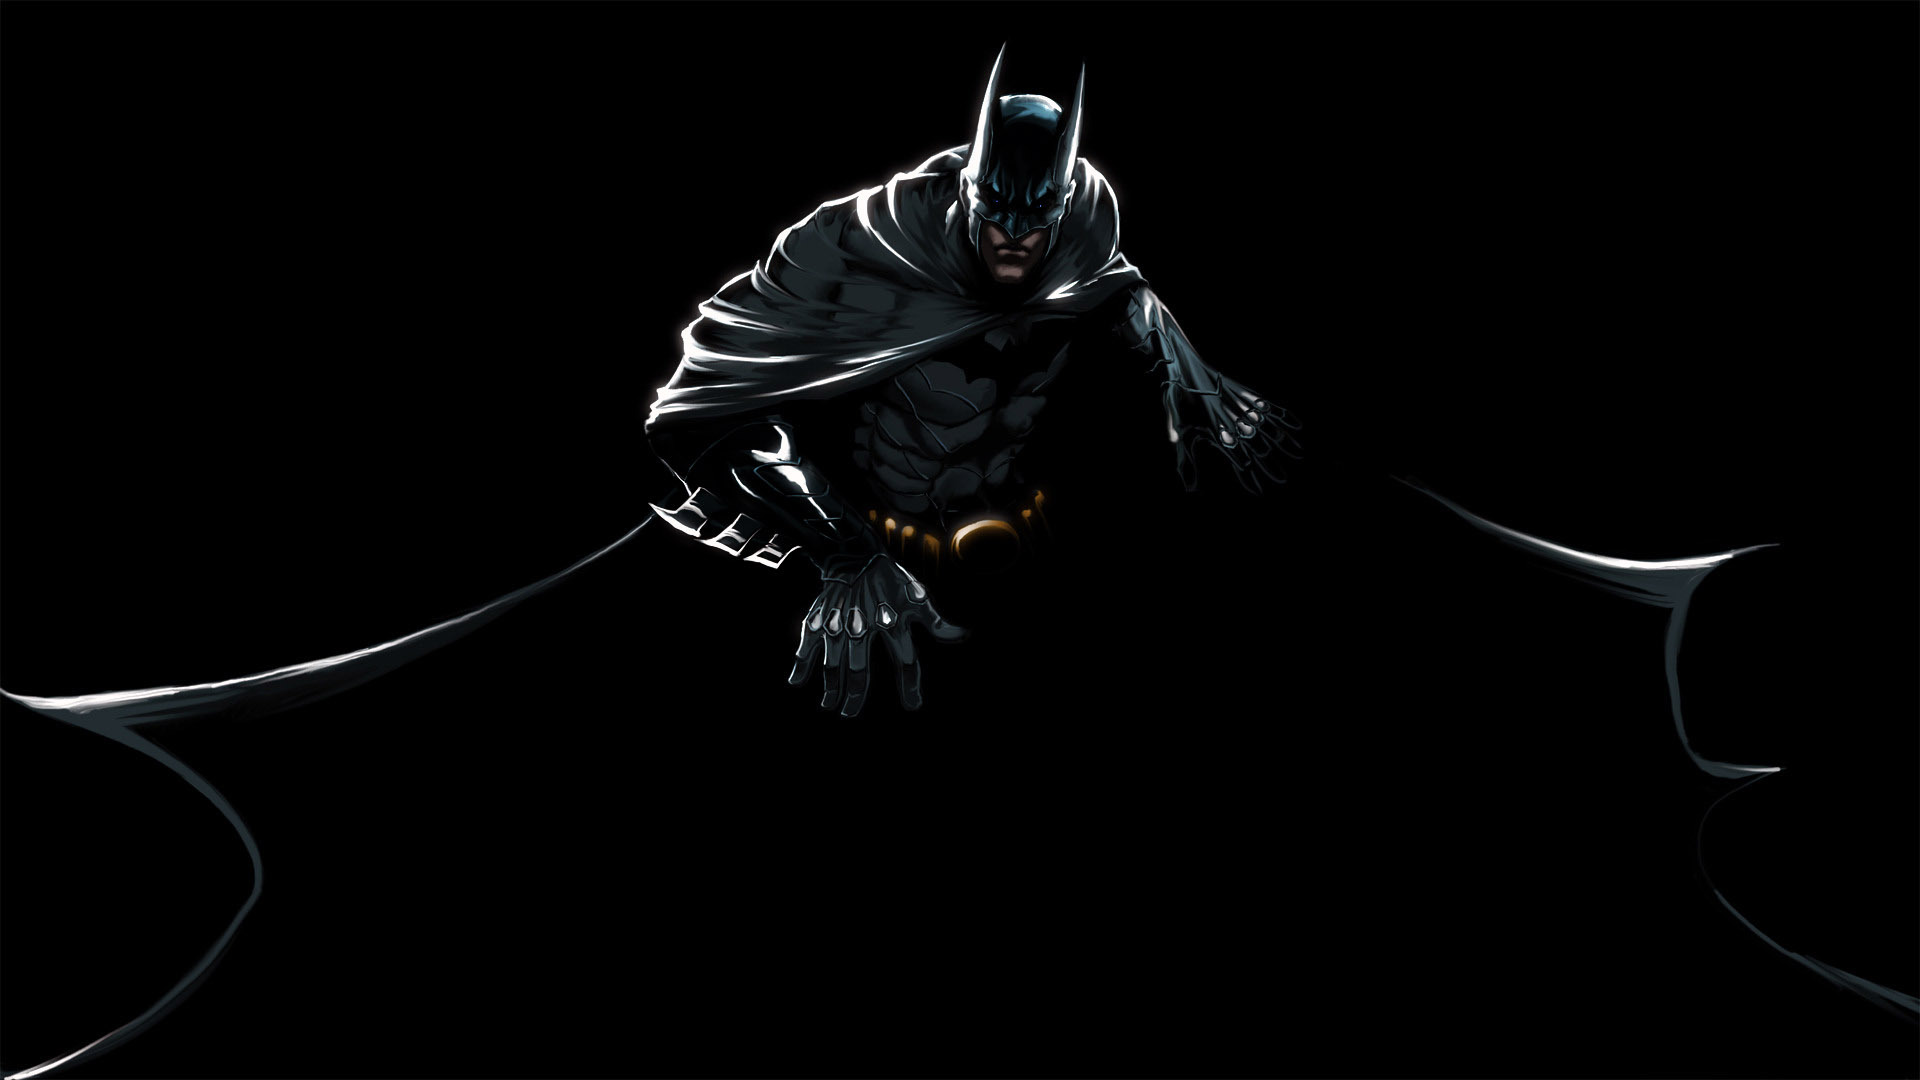 Collection of Batman Best Wallpapers on HDWallpapers